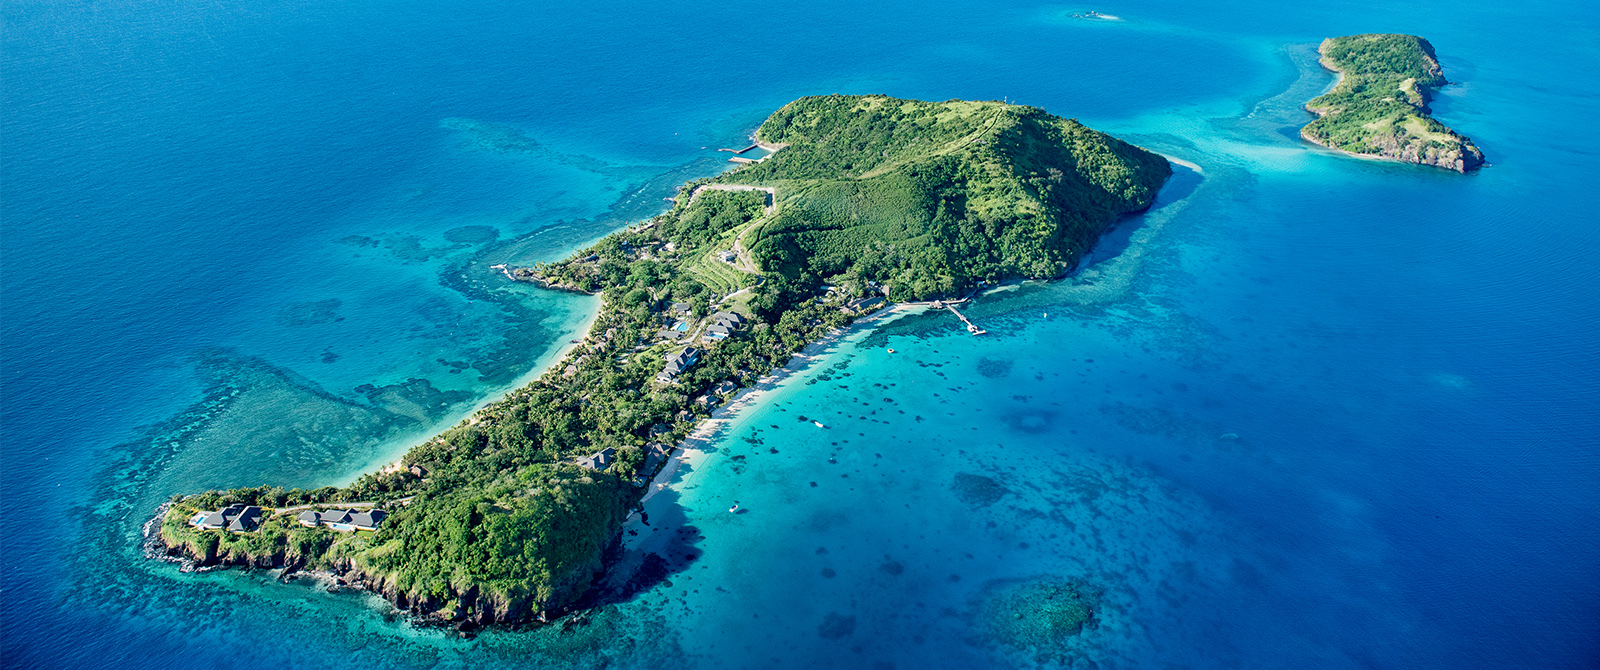 Kokomo Private Island - Aerial View